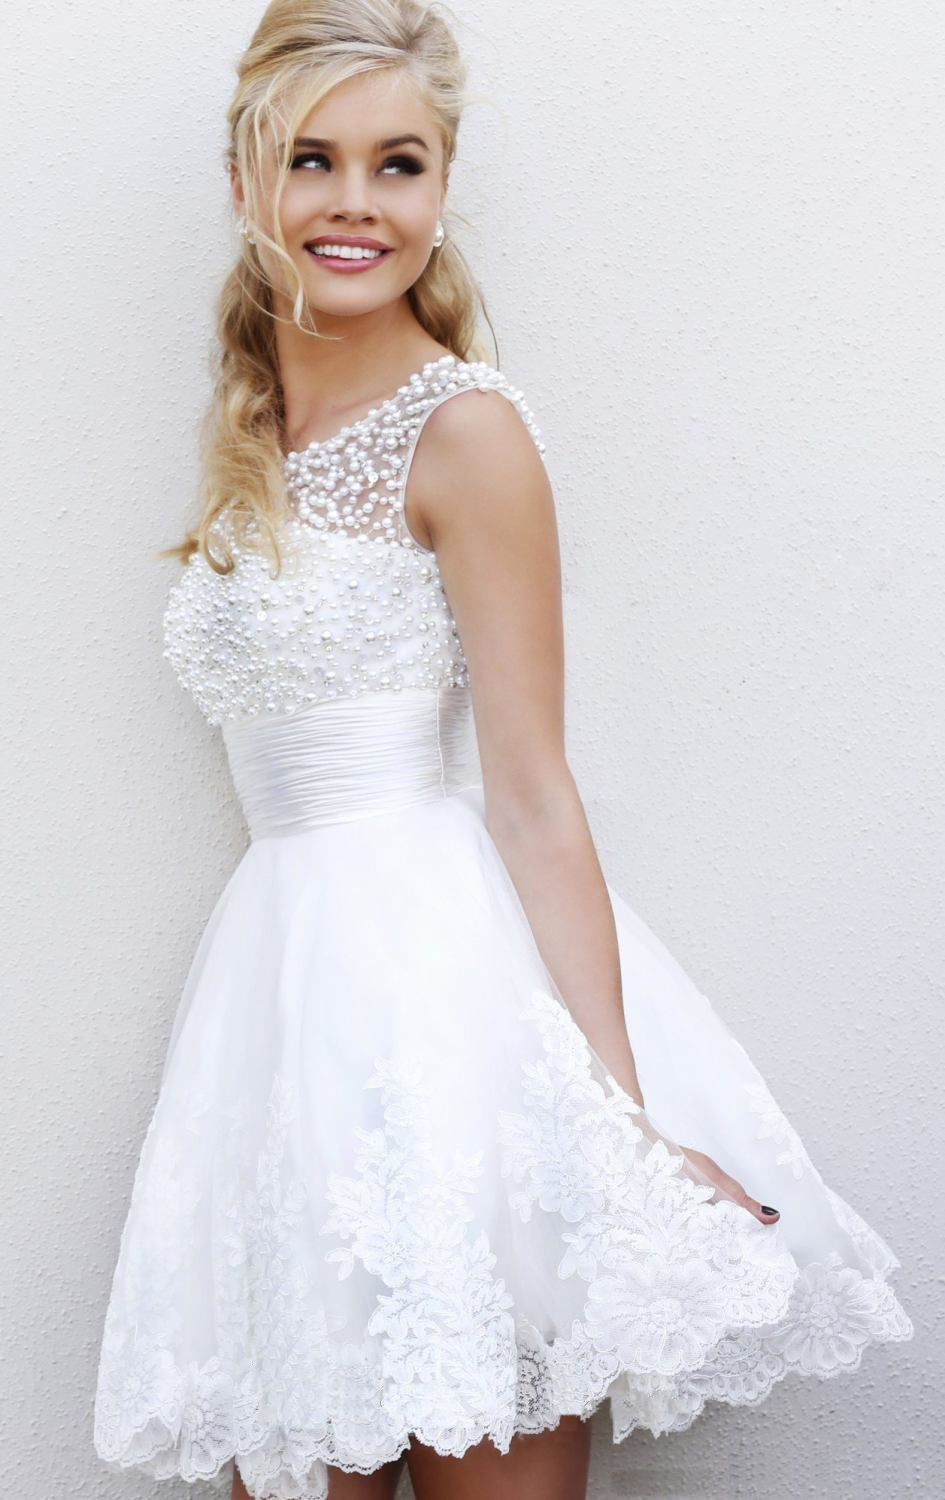 Does someone know where i can buy this dress honeymoon